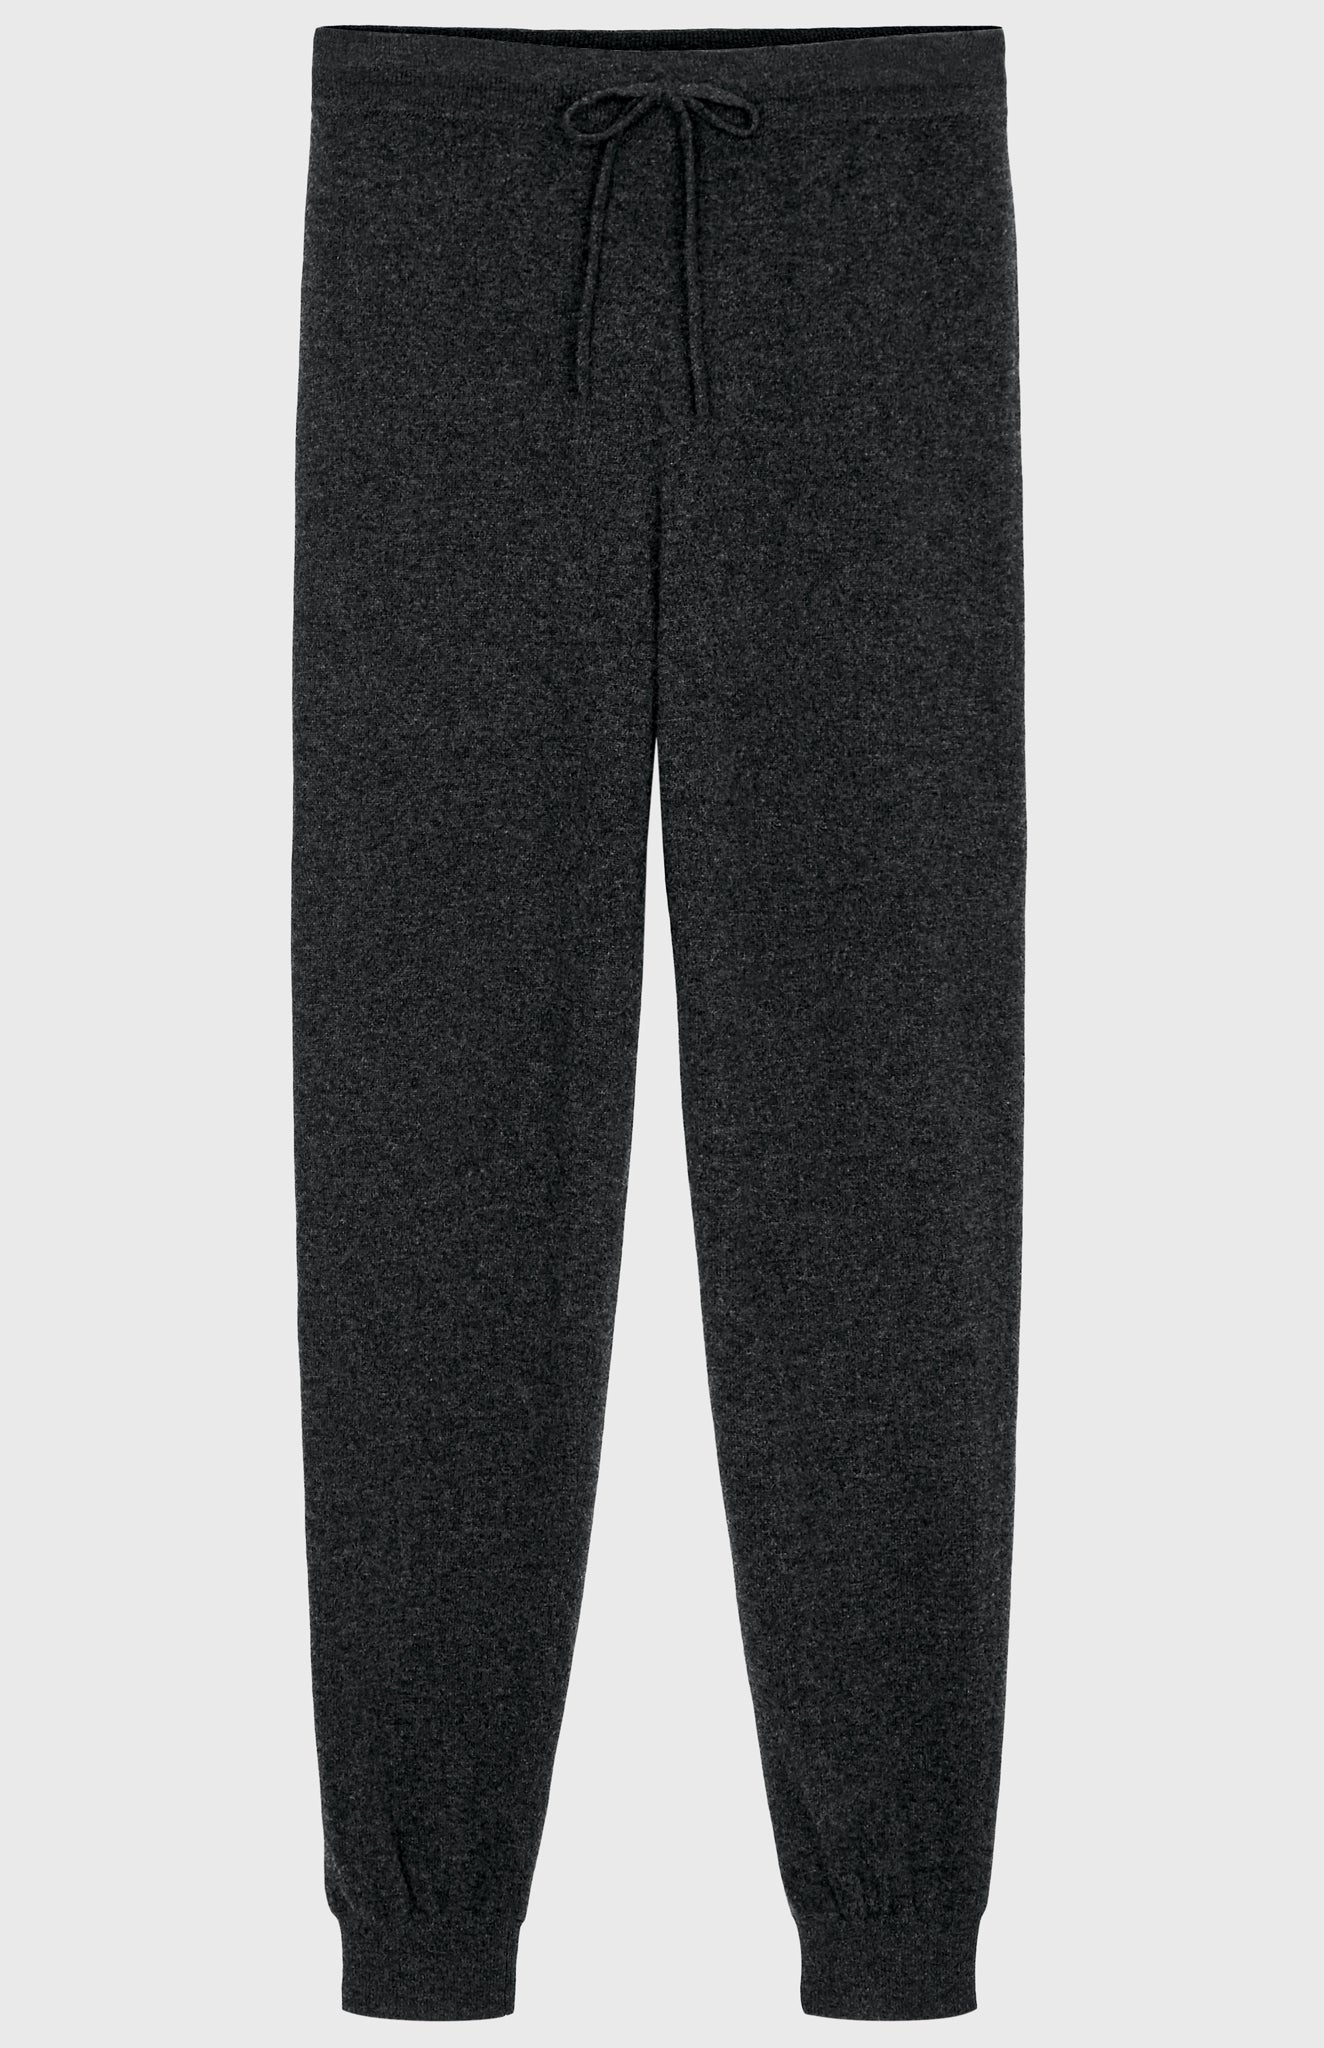 Women's Jogging Trousers In Charcoal